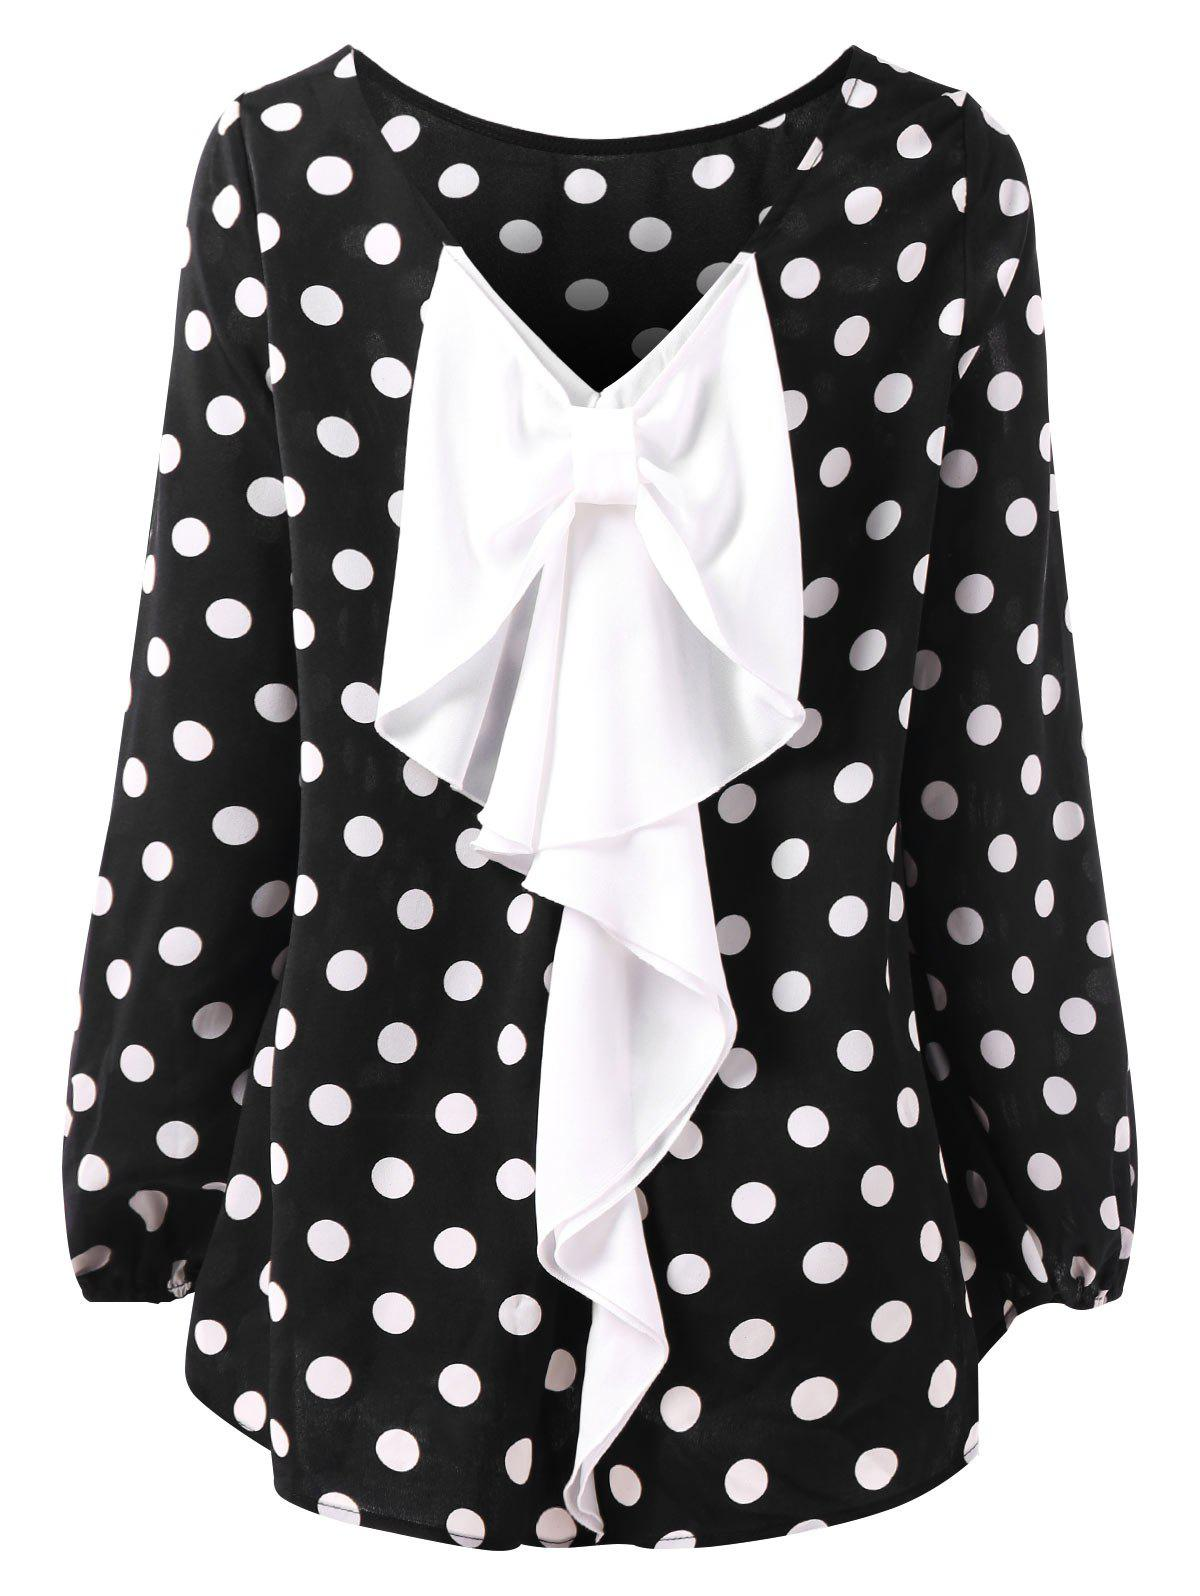 Hot Dotted High Low Contrast Bowknot Blouse